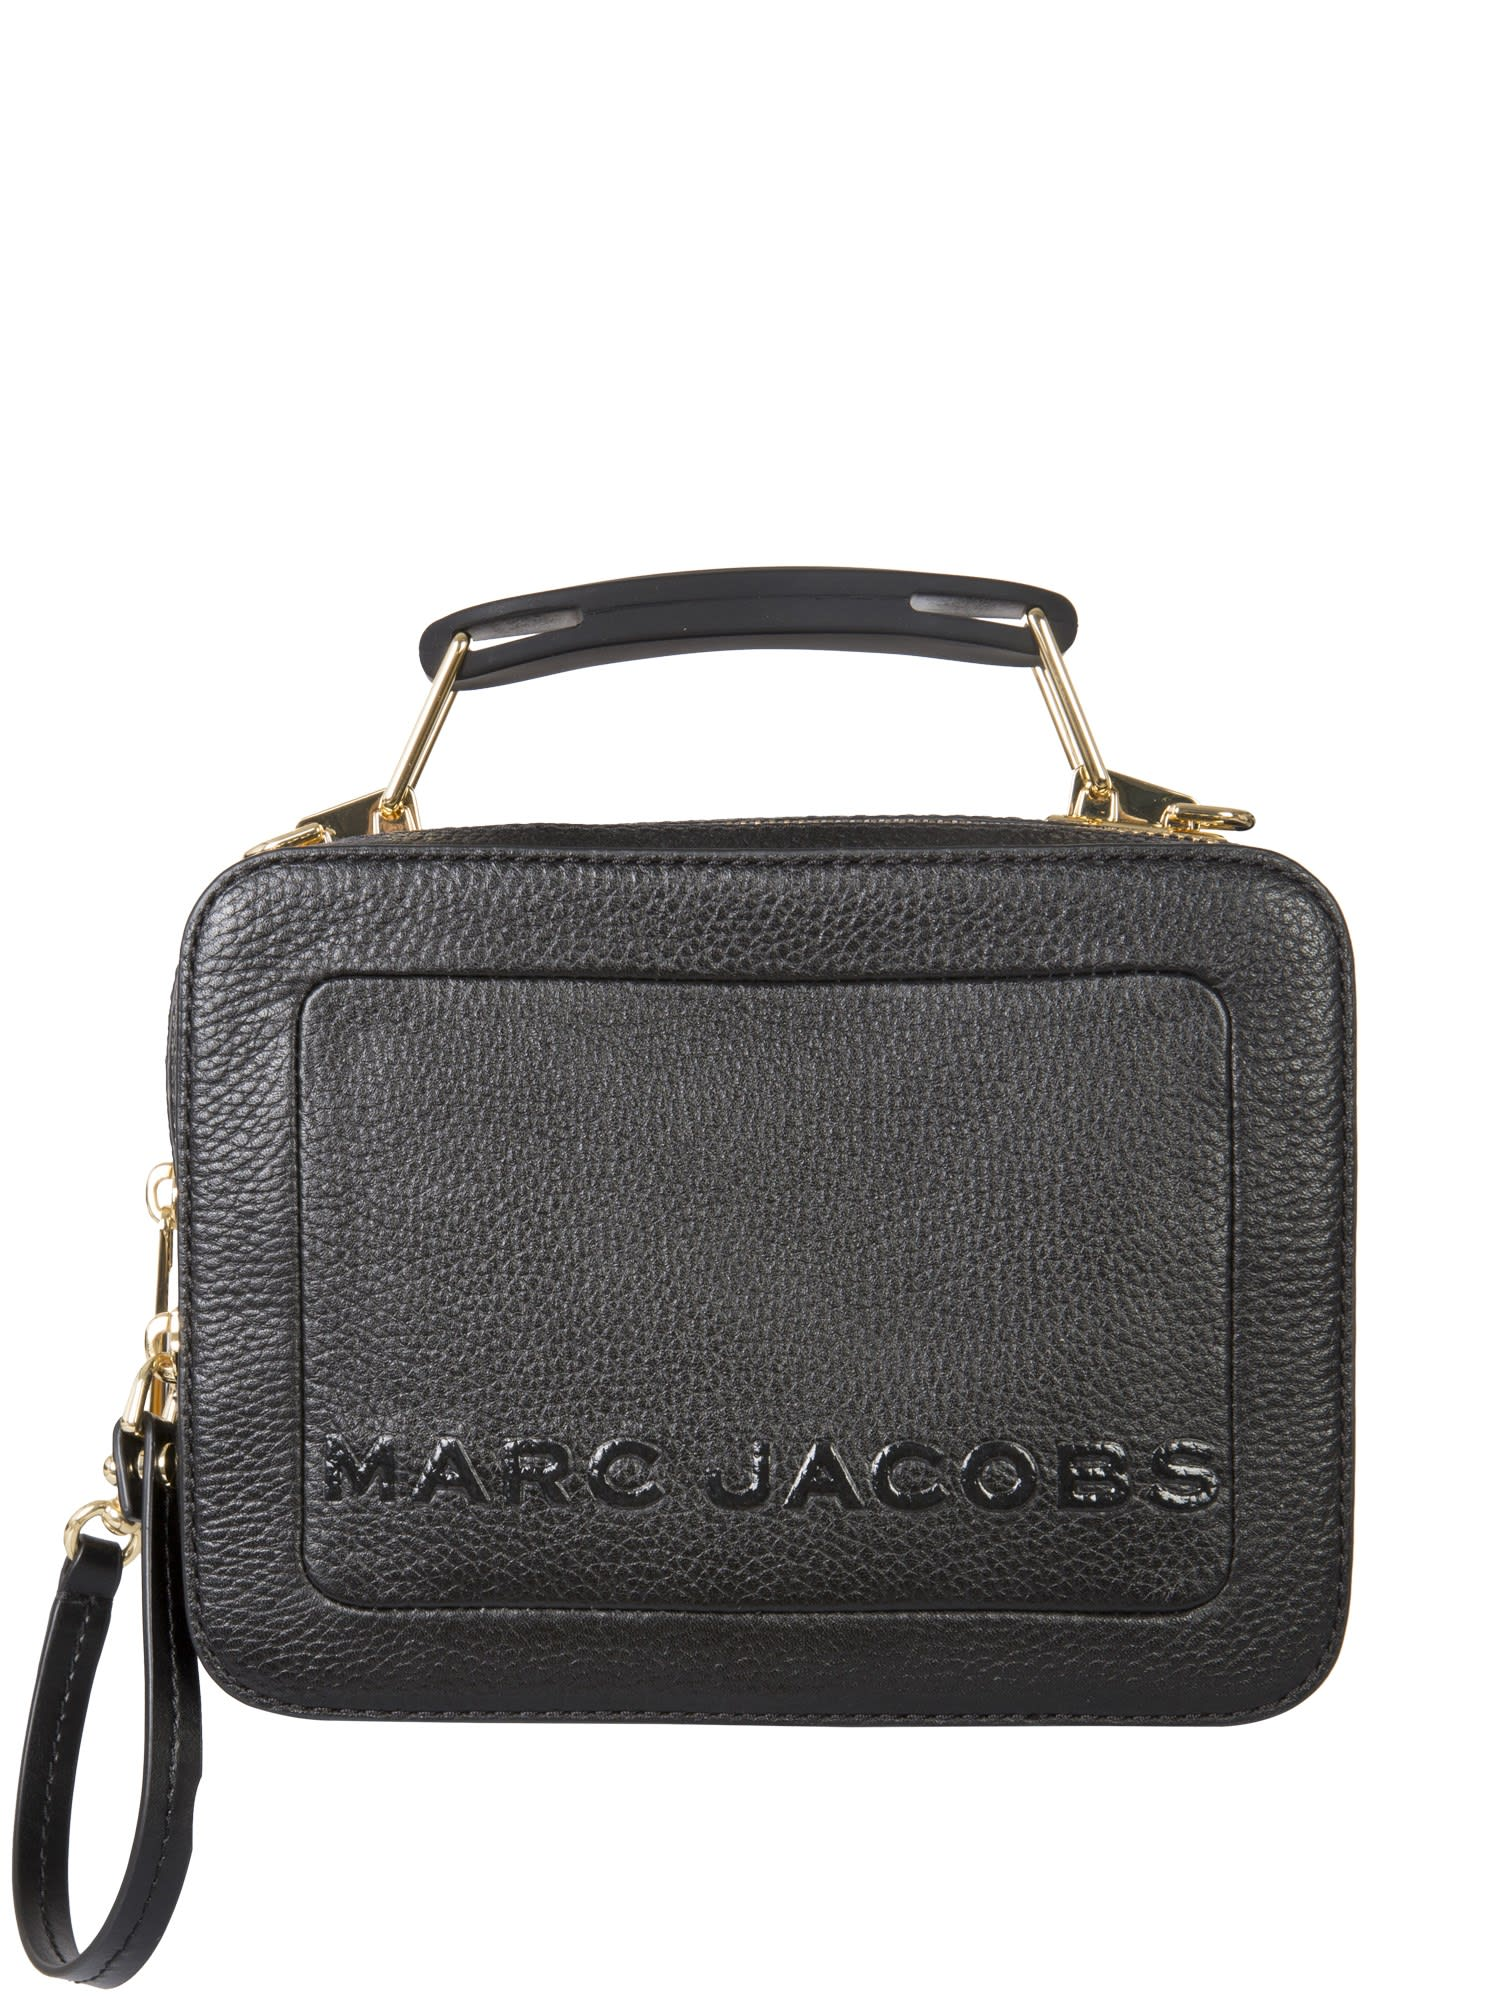 Marc Jacobs The Textured Box Mini Bag